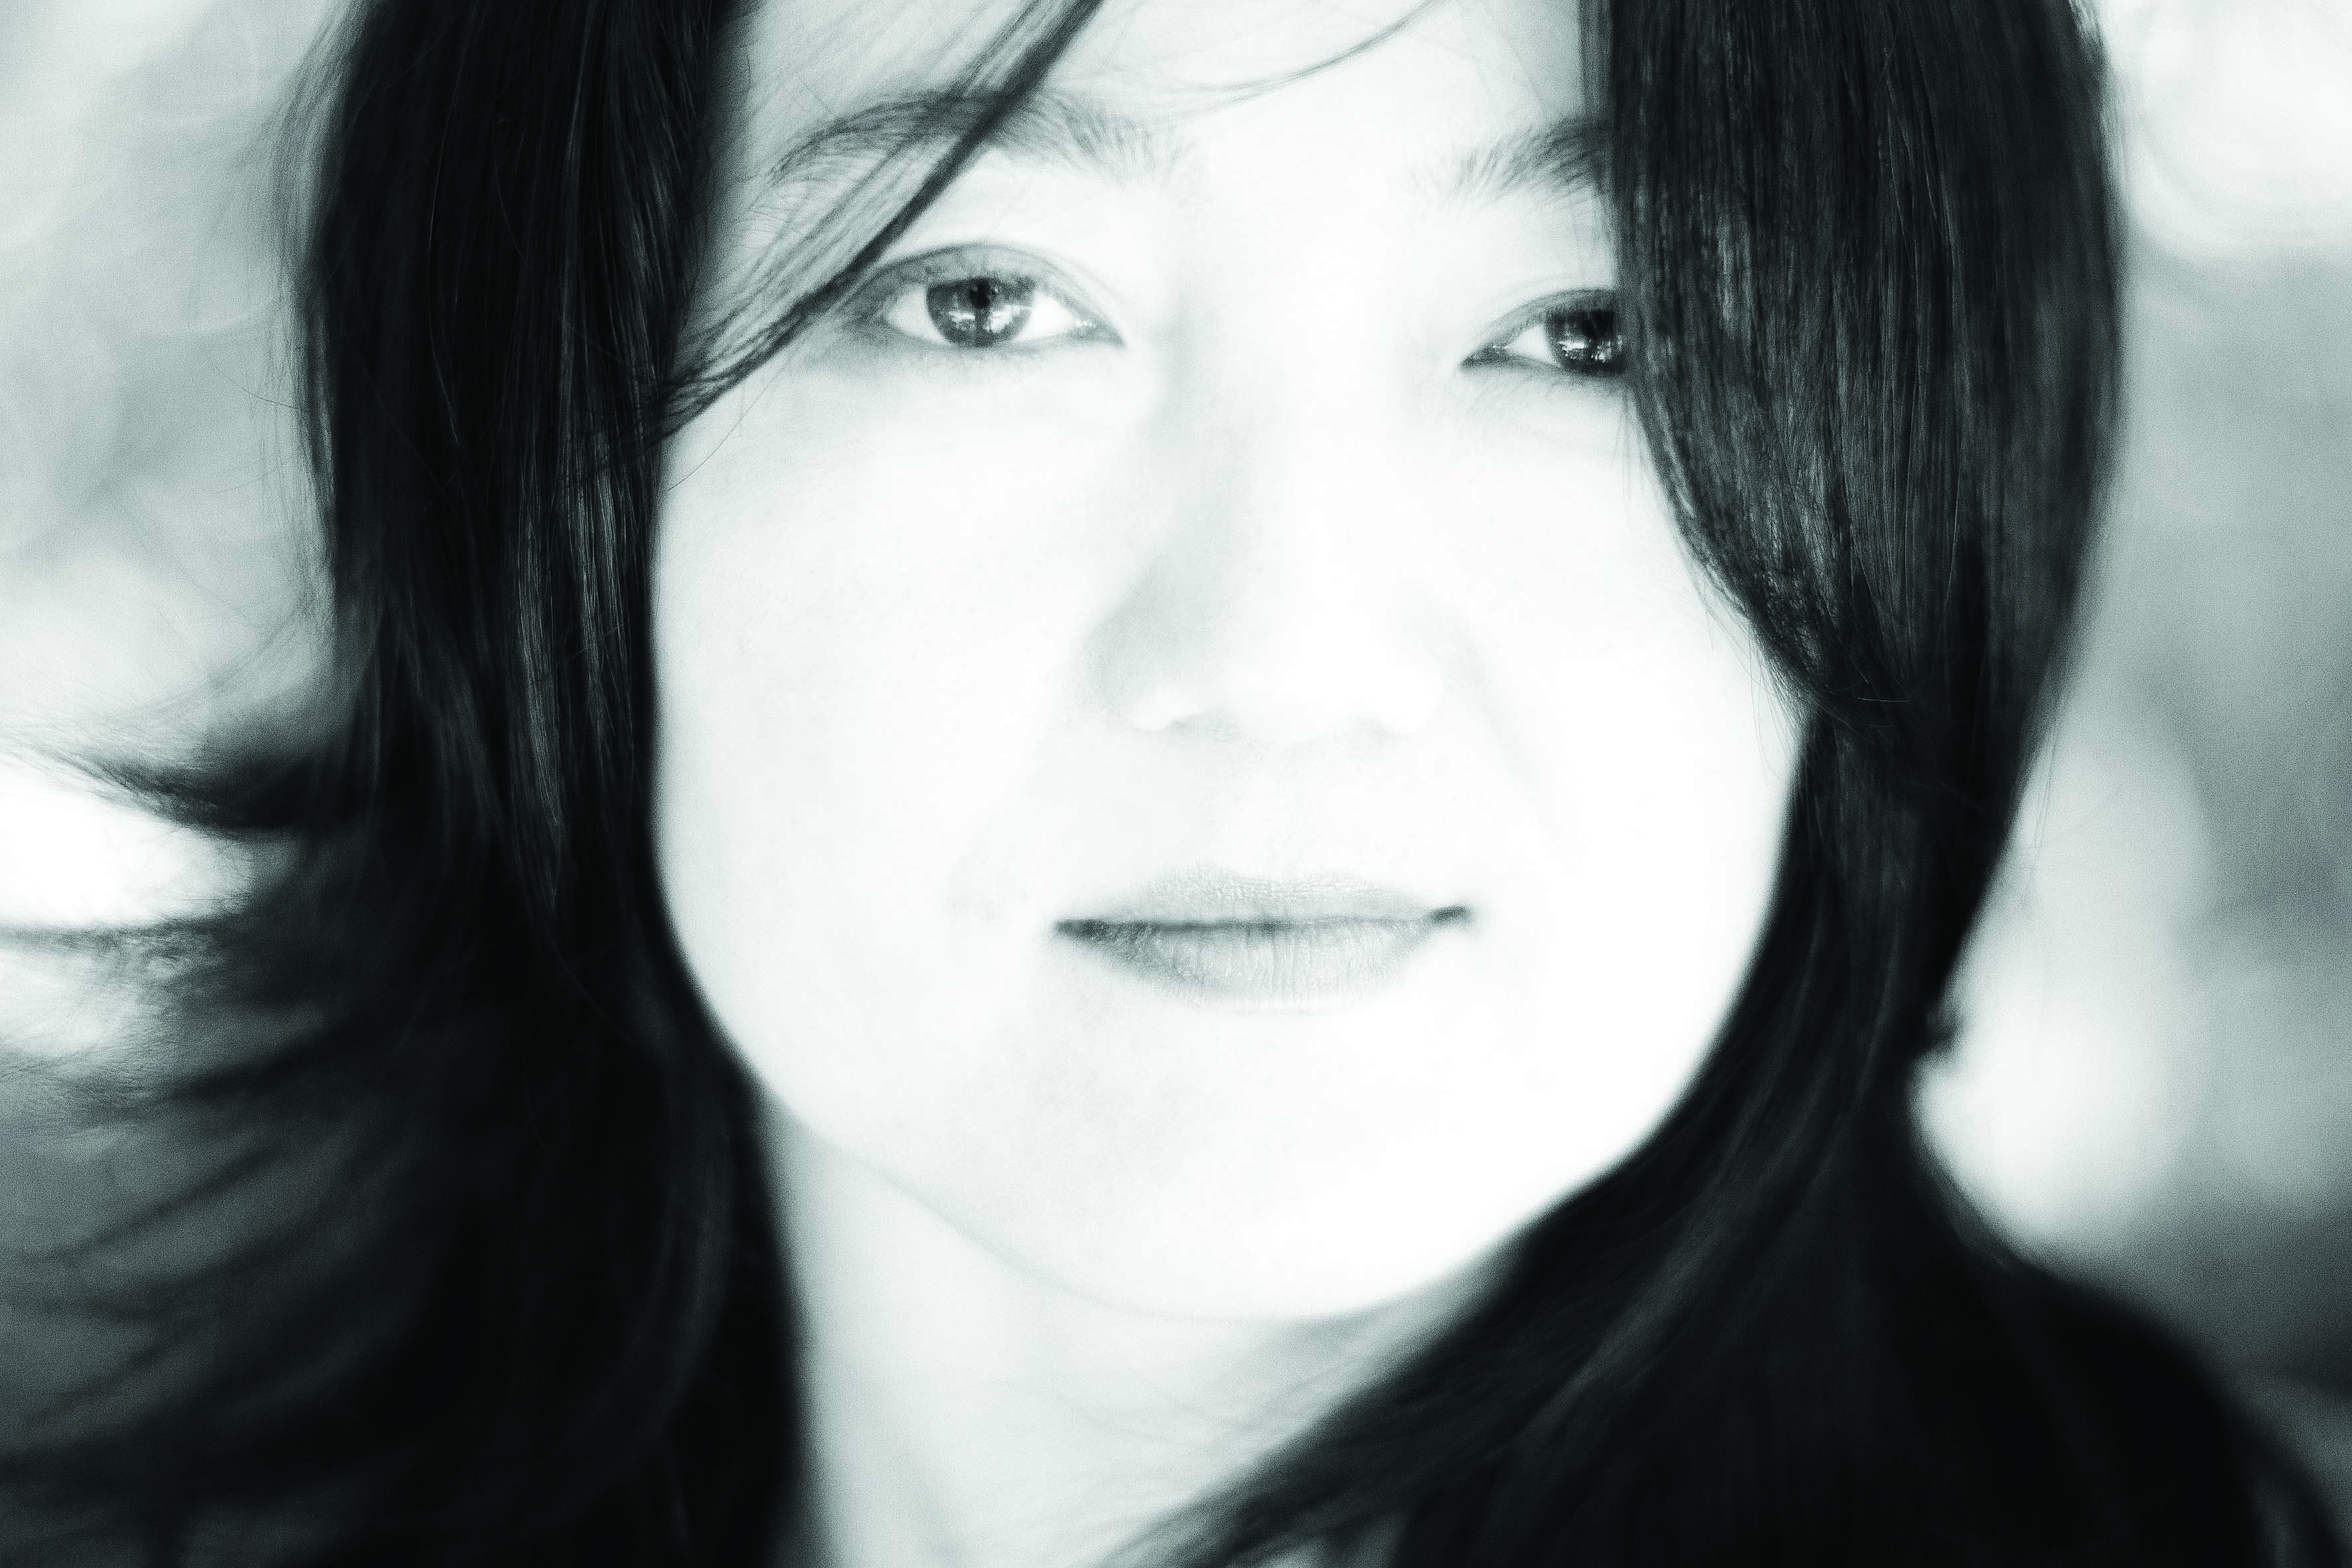 Makiko Hirabayashi Photo by Stephen Freiheit